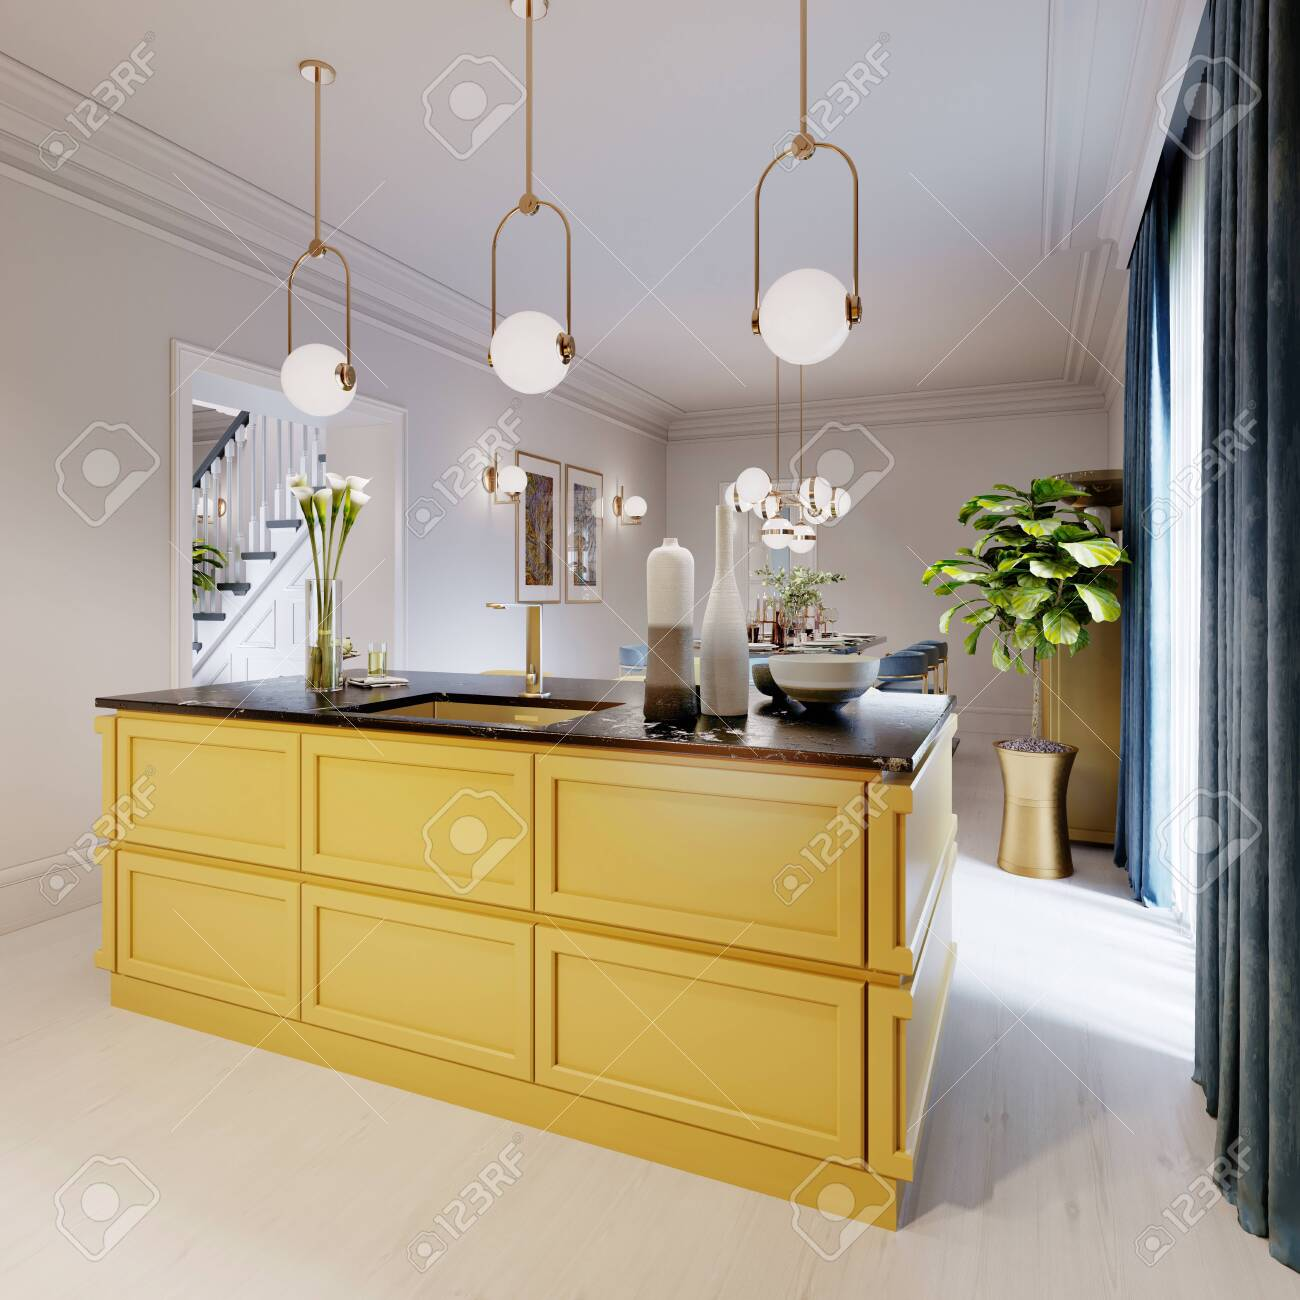 Modern Kitchen Island In Yellow Kitchen With Pendant Lamp Over Stock Photo Picture And Royalty Free Image Image 150291374